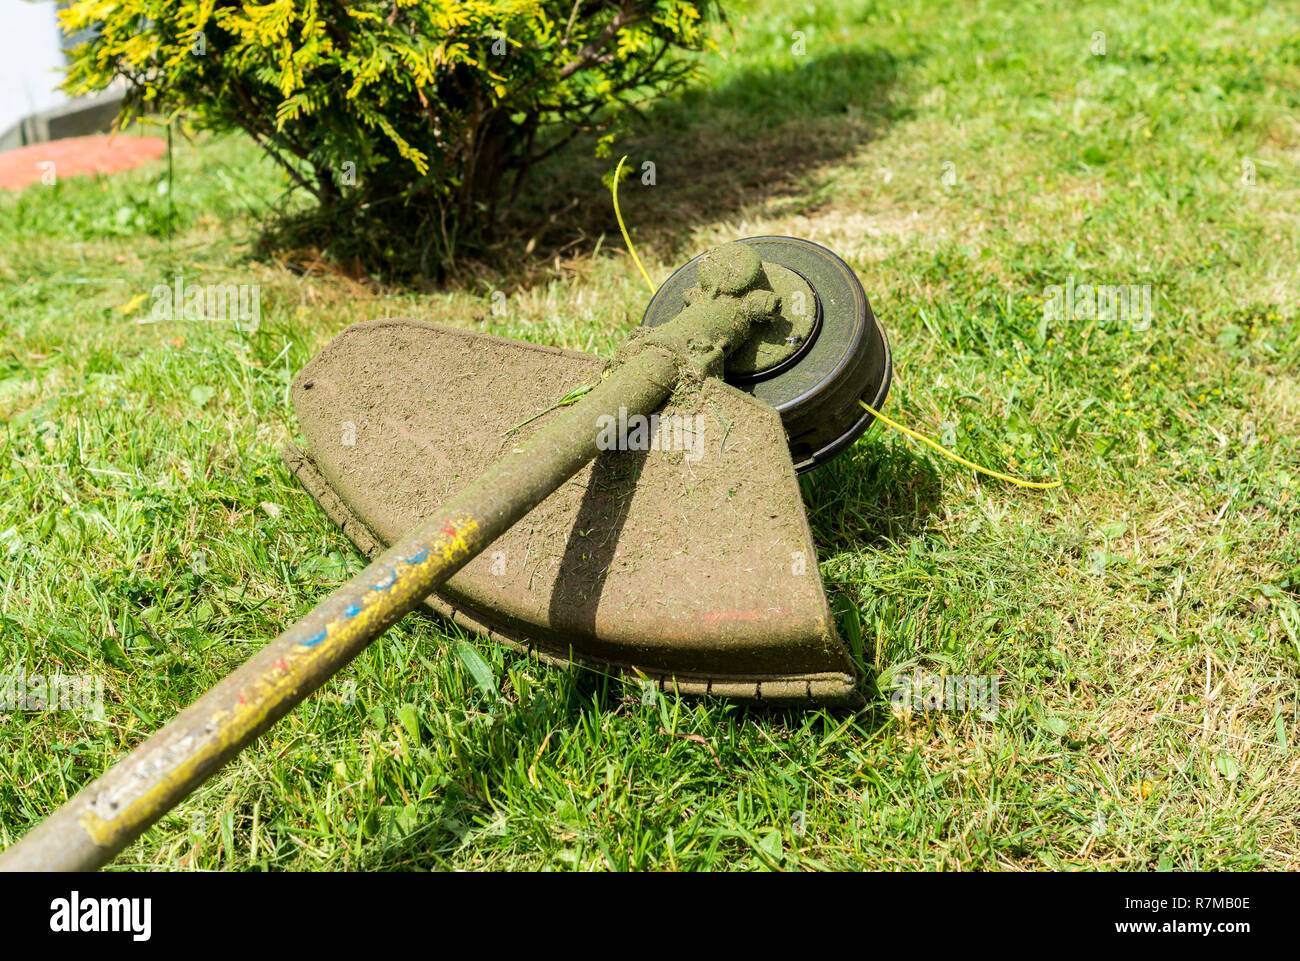 brushcutter meadow tool - Stock Image